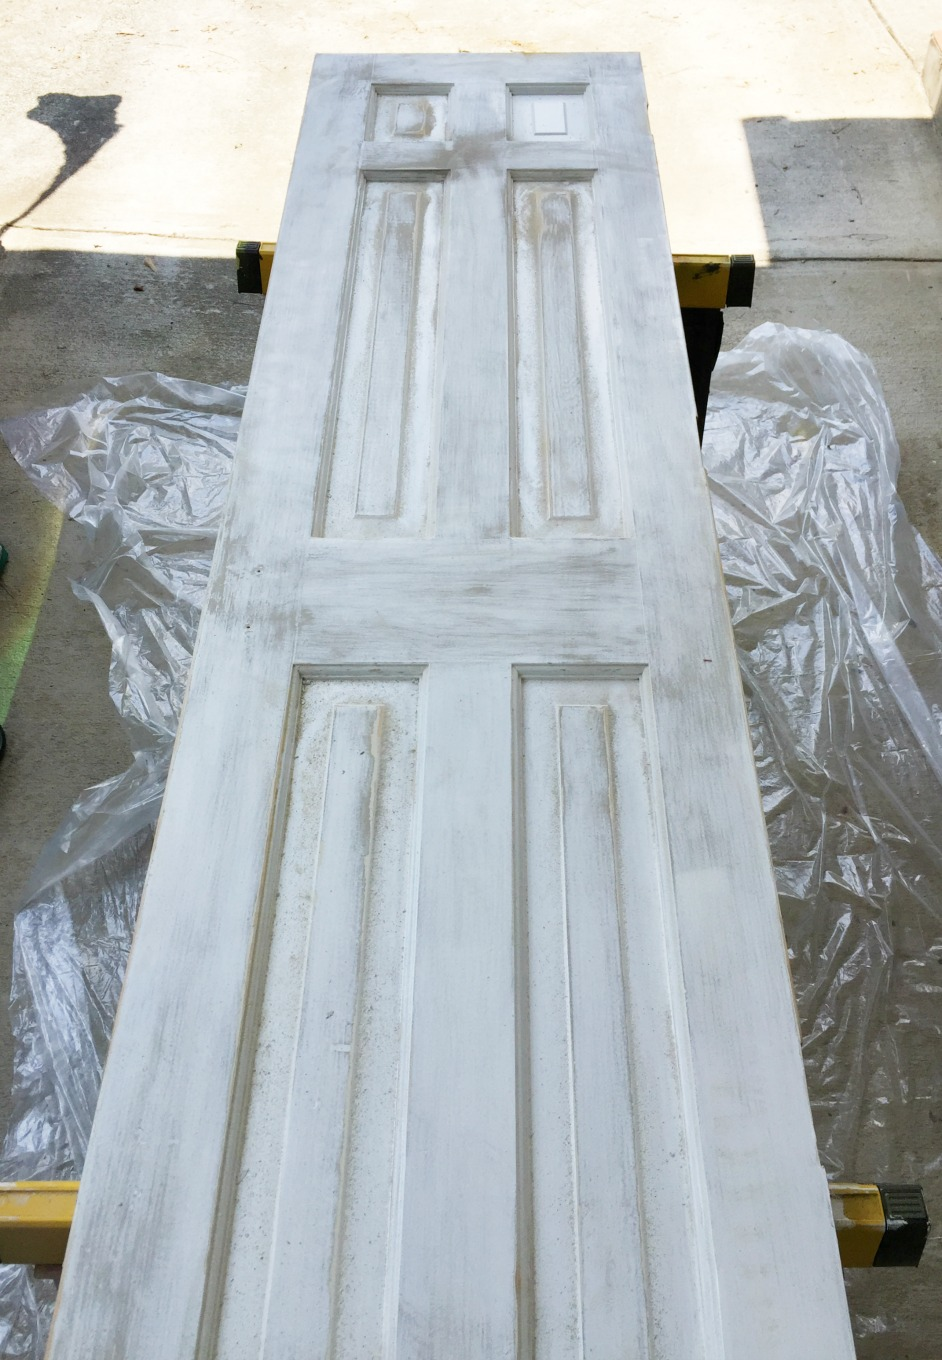 Door sanded to remove paint - thediybungalow.com